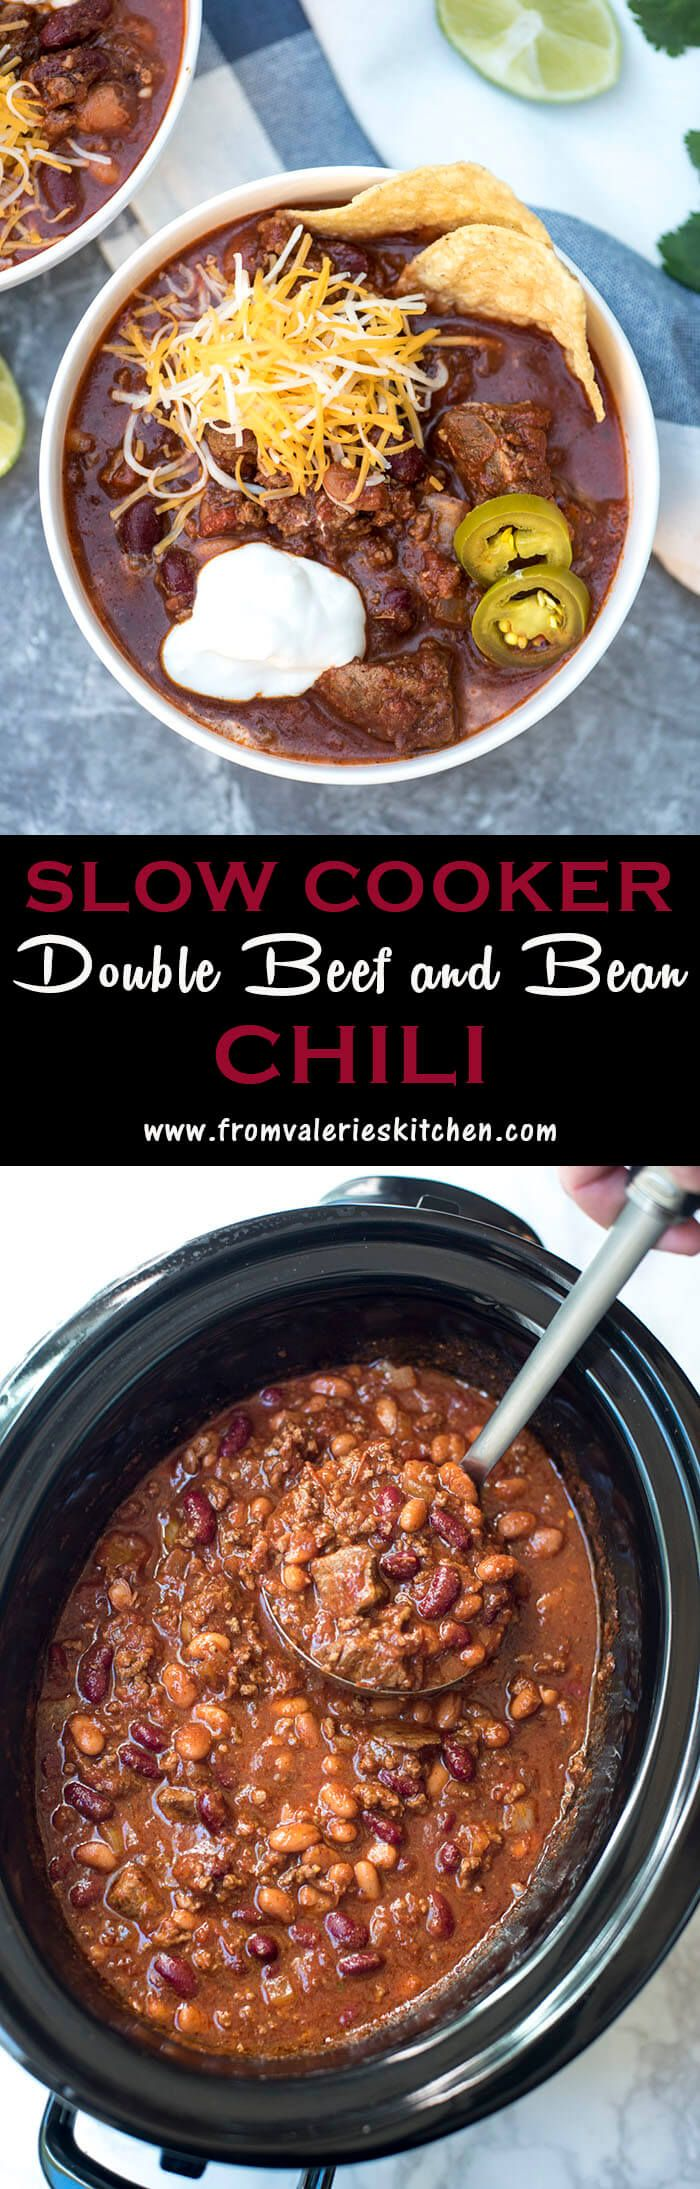 Slow Cooker Double Beef and Bean Chili is hearty red chili that includes both cubed and ground beef, two kinds of beans, and a delicious blend of spices.